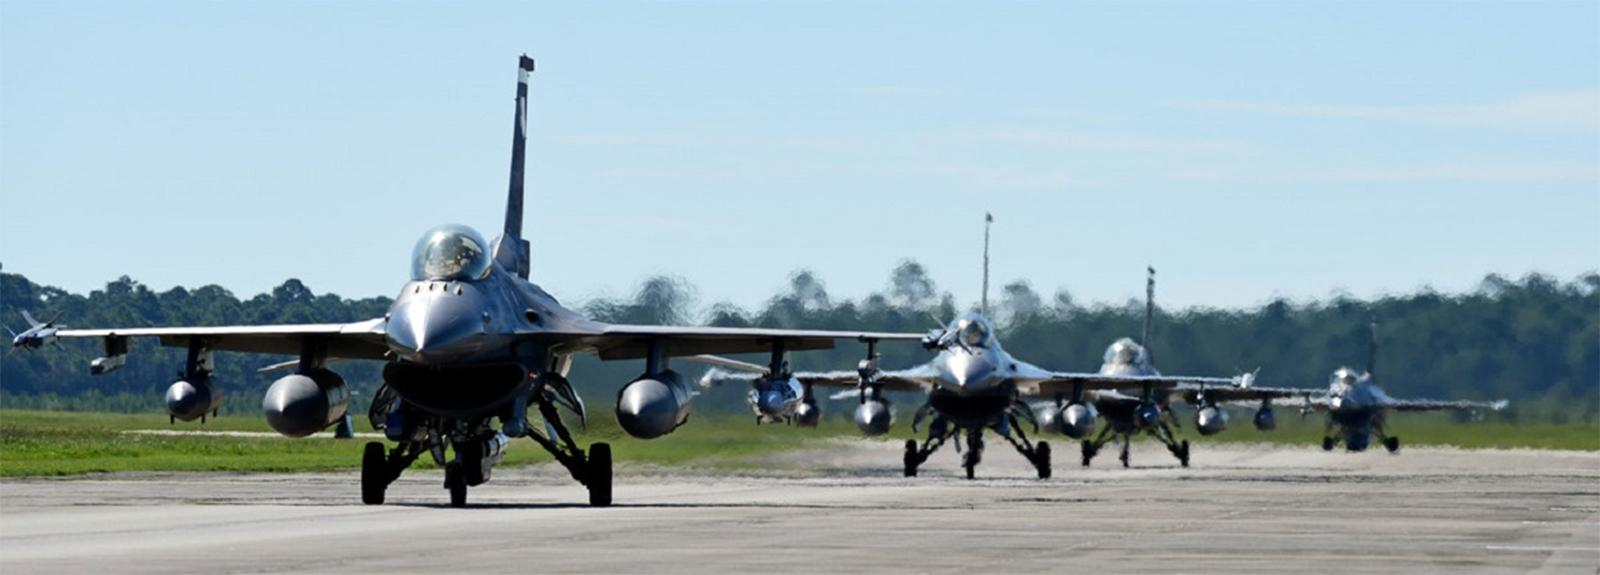 Fighter jets line up at Tyndall Air Force Base in Florida